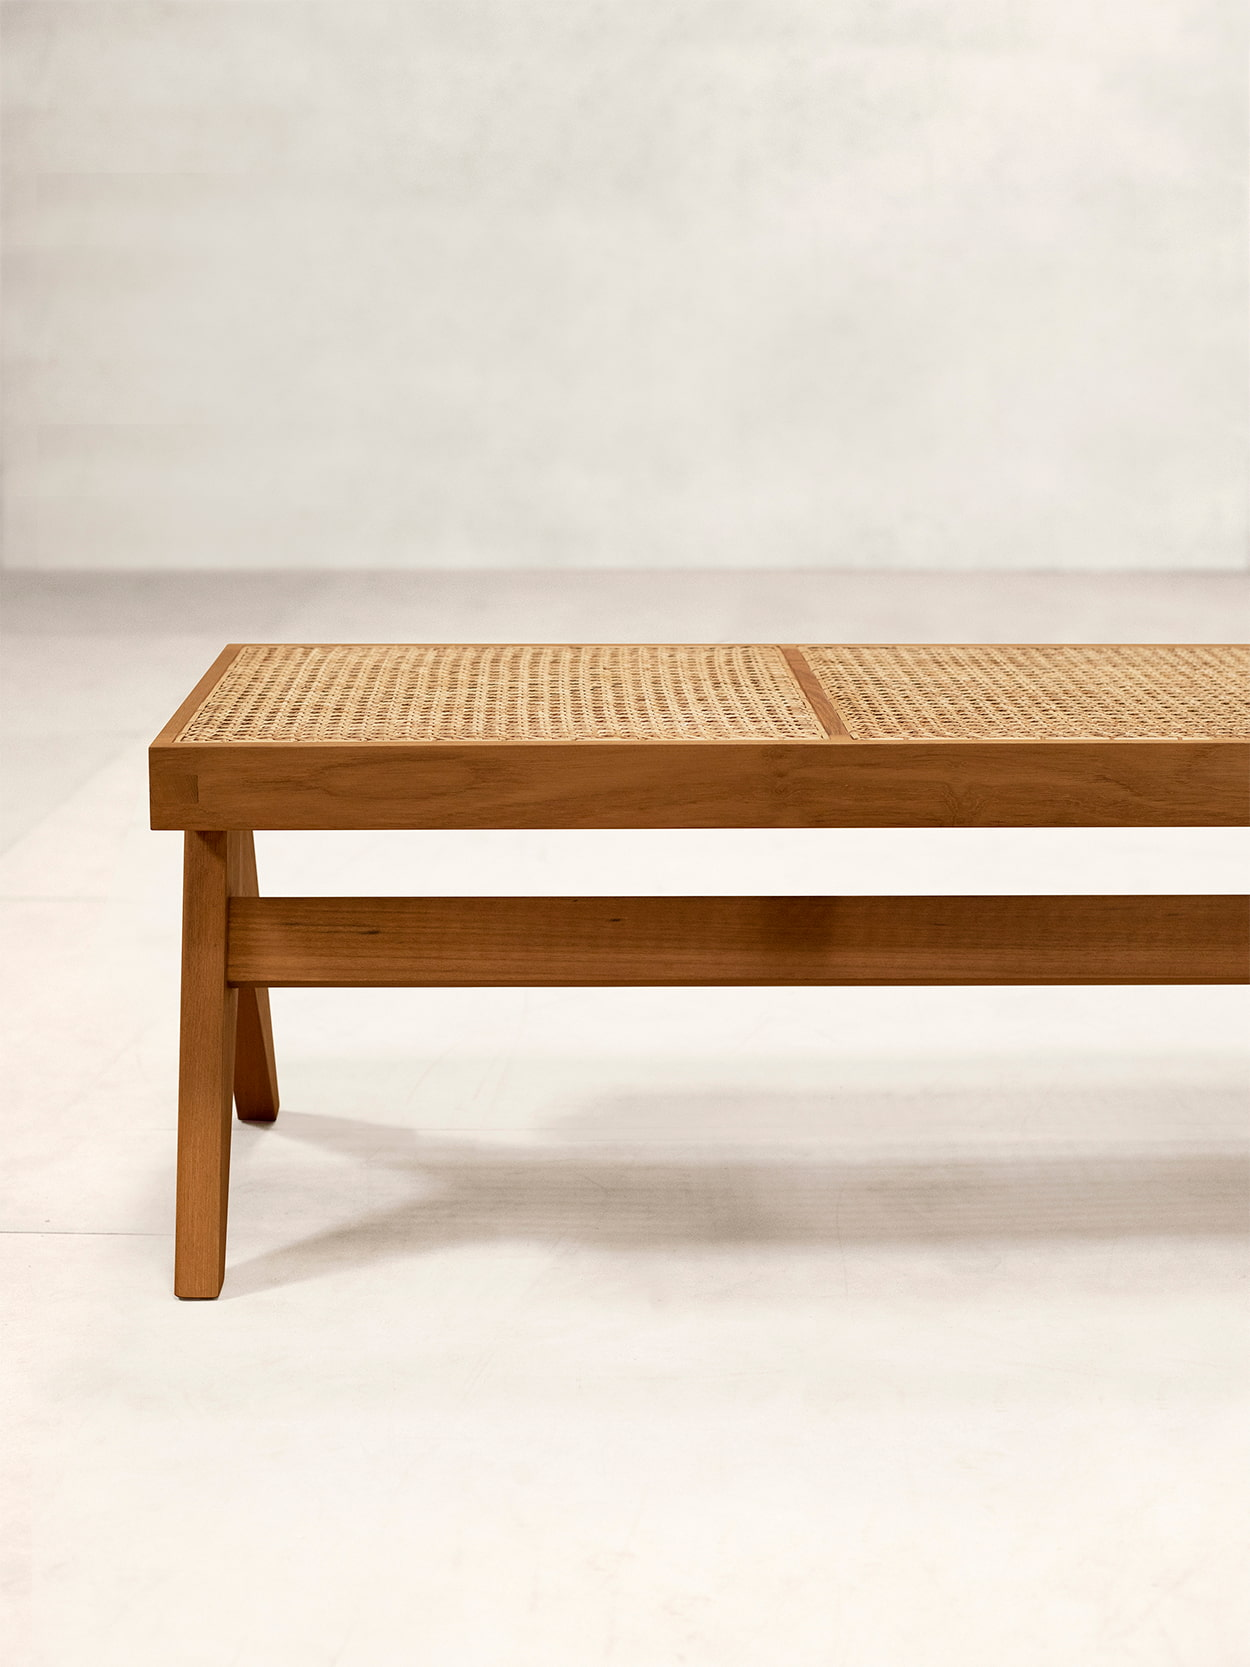 Teak and Cane Bench 3